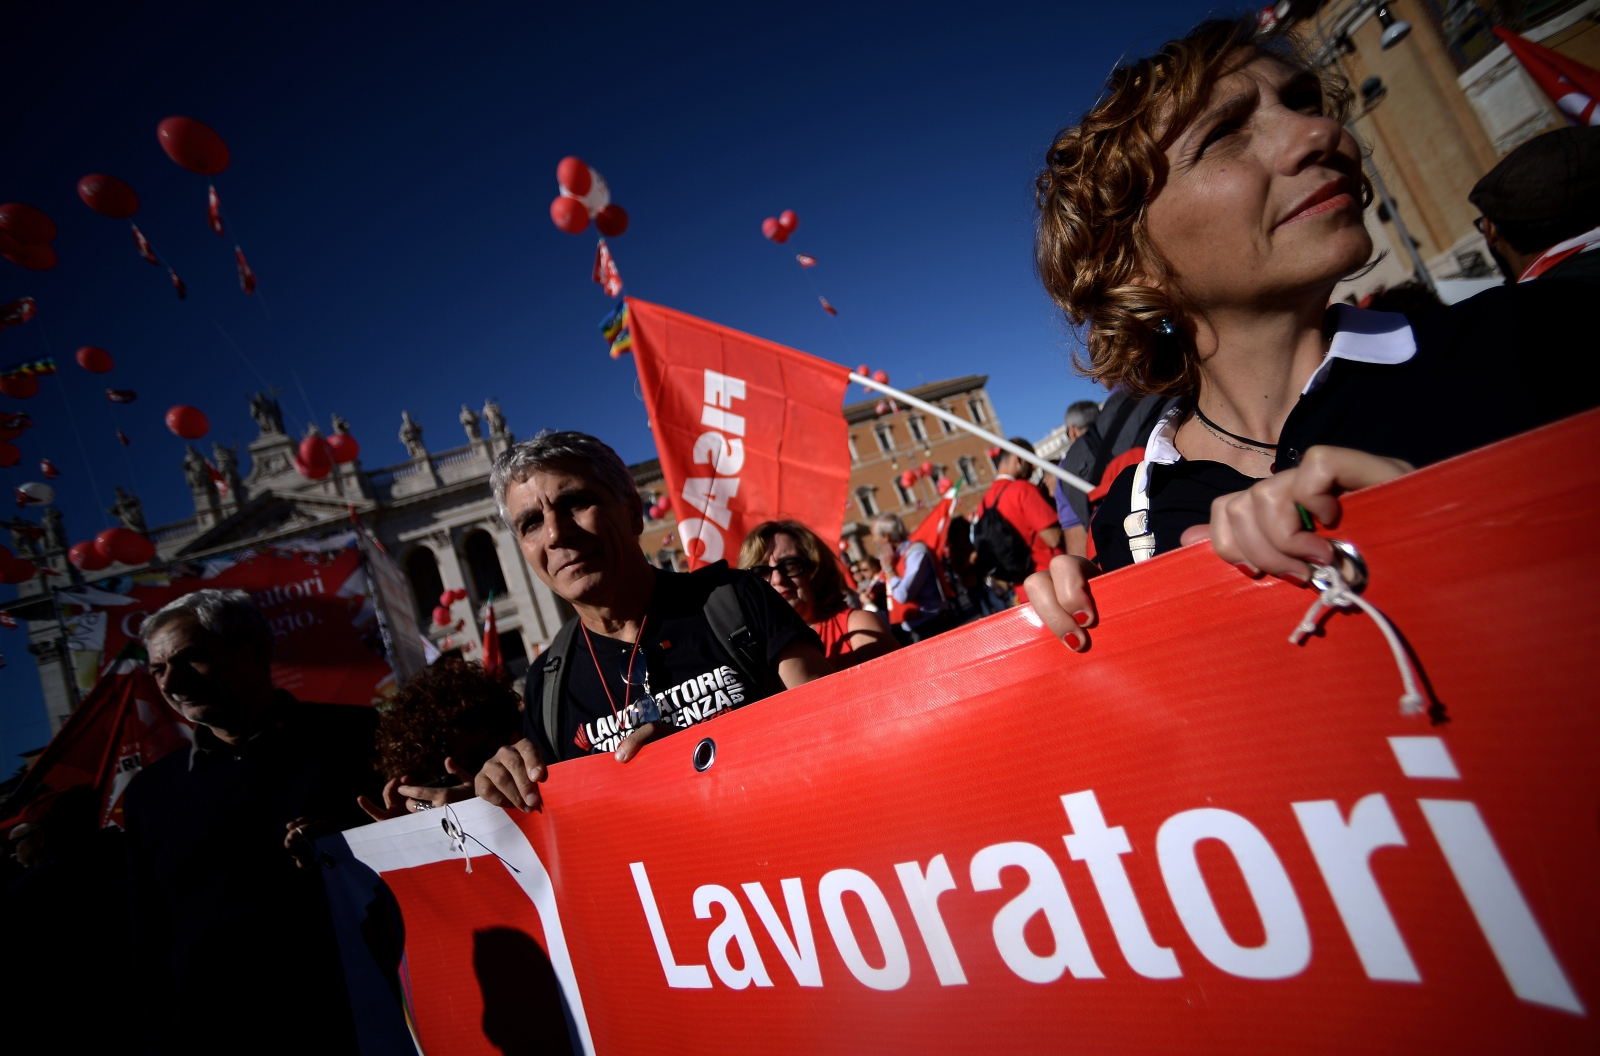 Protestors holding a banner arrive in San Giovanni square during a demonstration organised by Italian General Confederation of Labour (CGIL) union